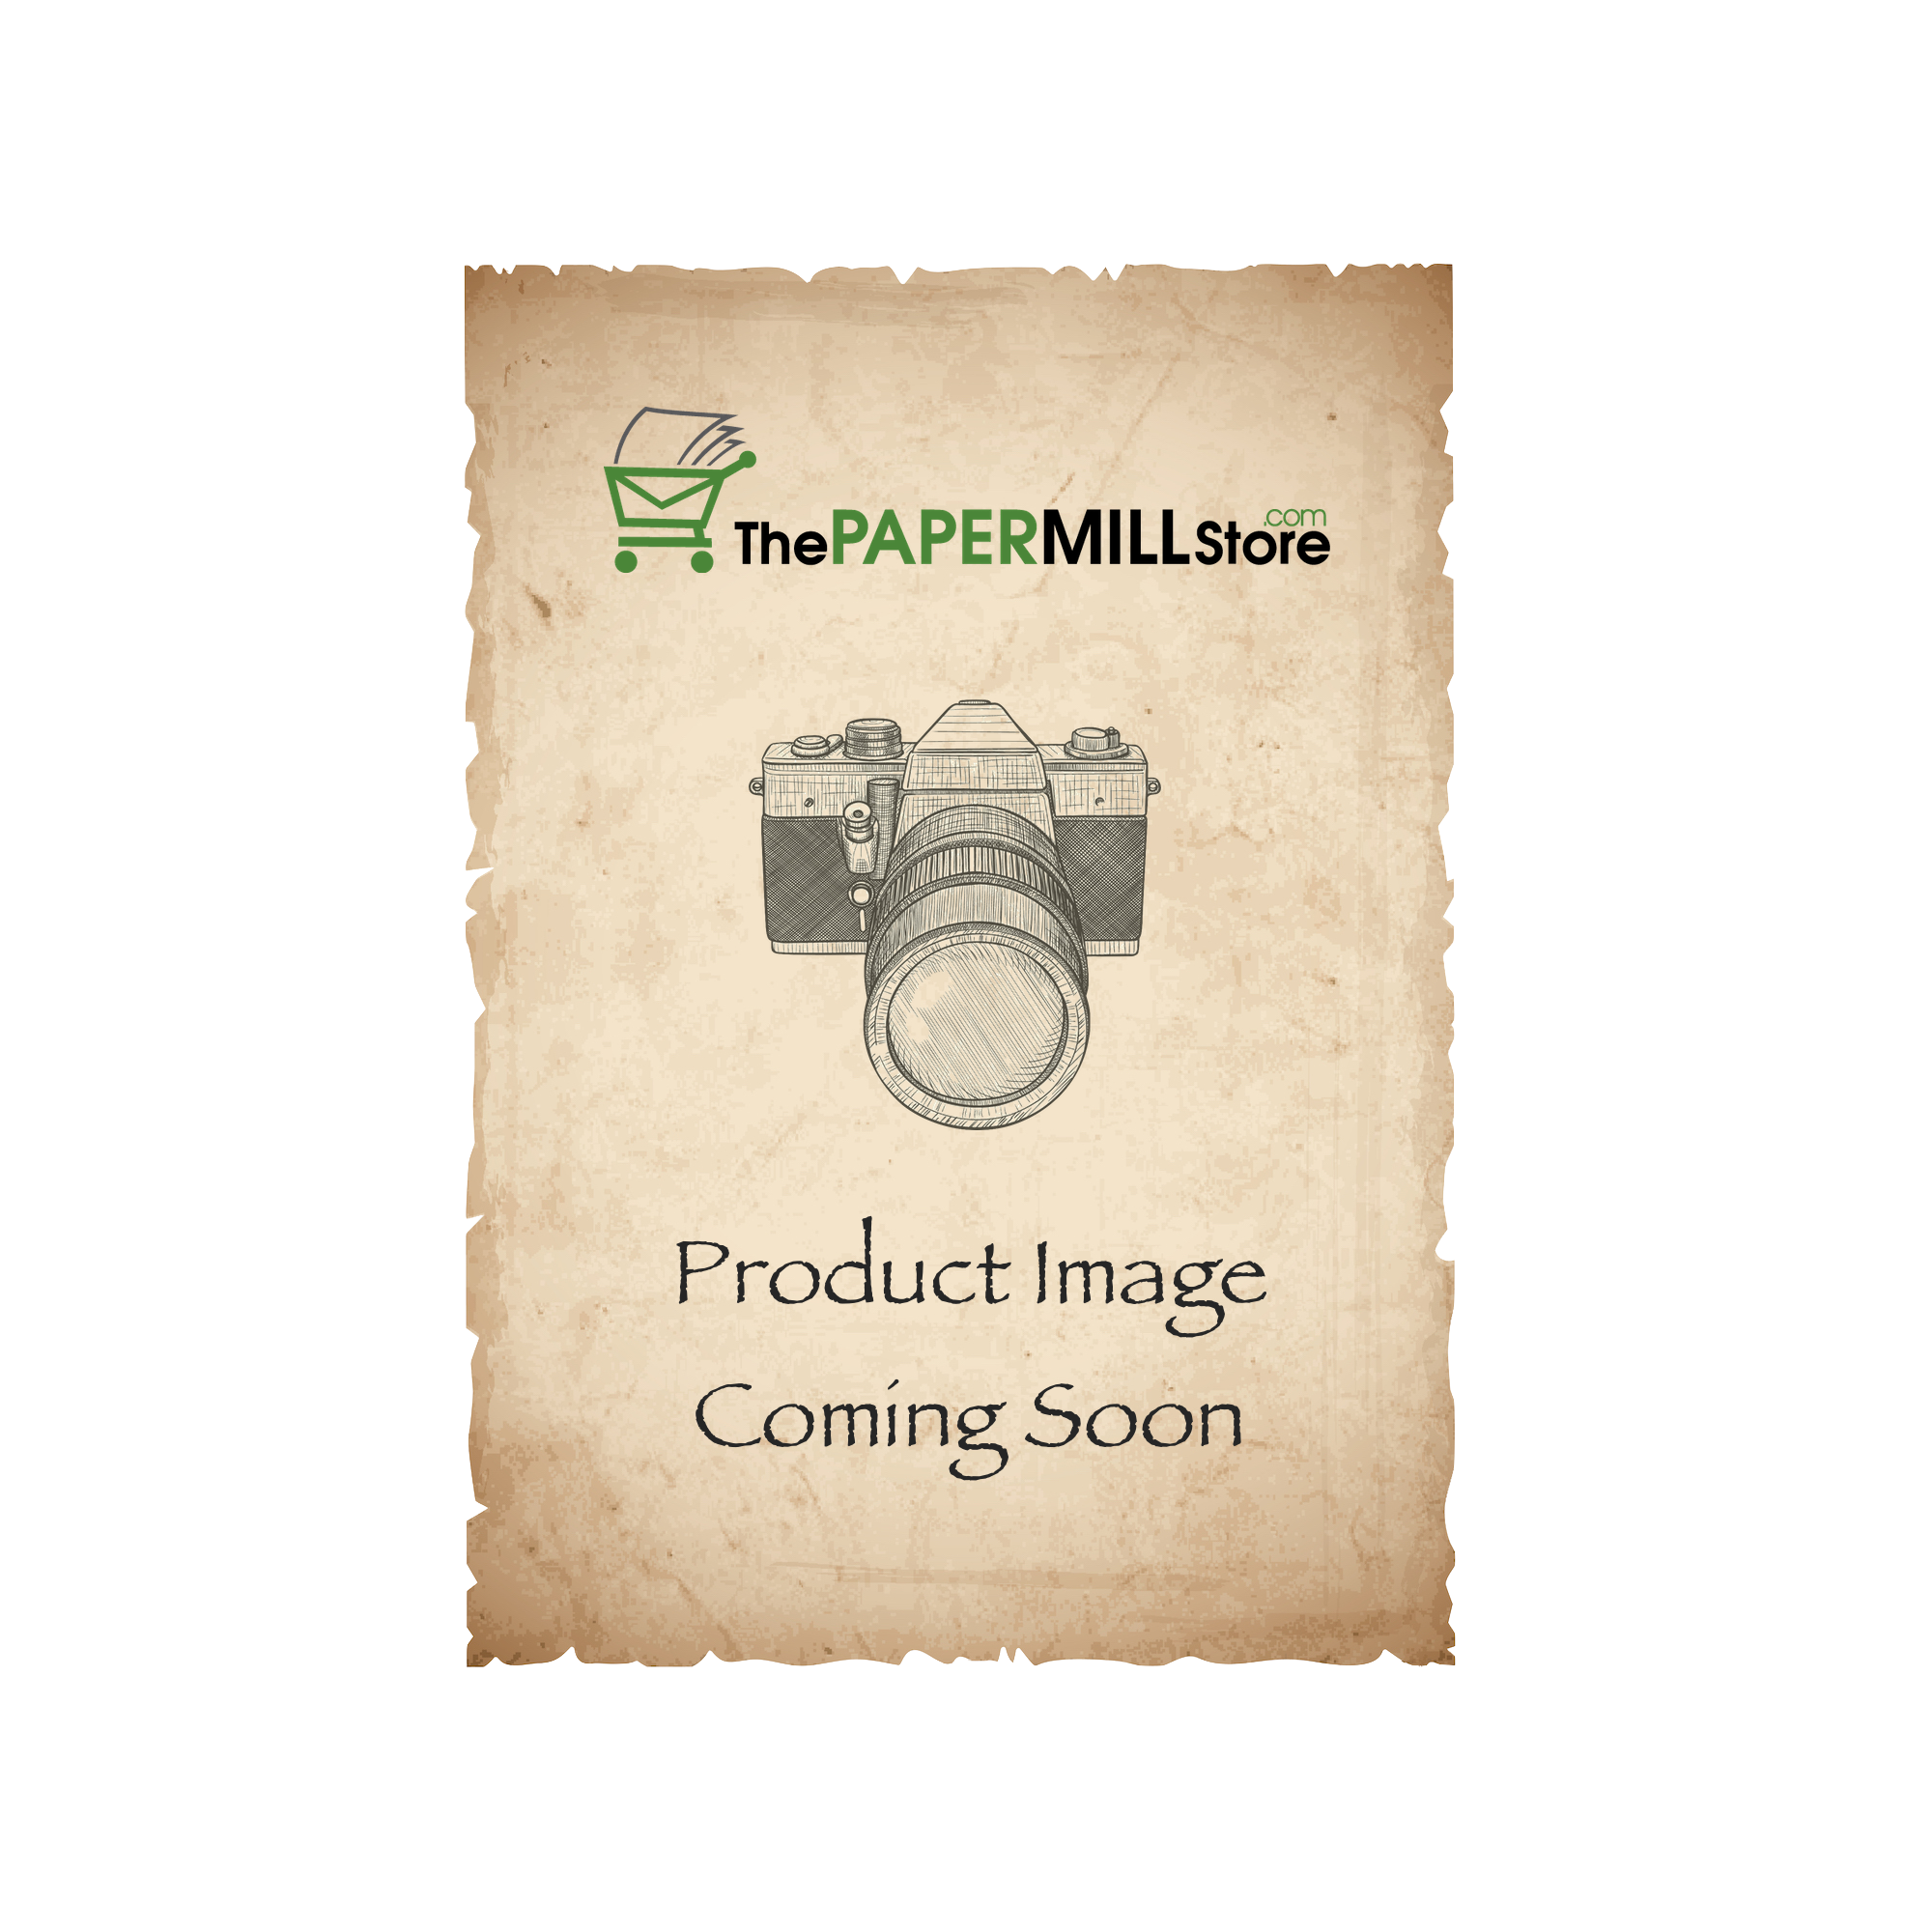 Buy Via Smooth Cream White Paper - 25 x 38 in 80 lb Text Smooth  30% Recycled 1000 per Carton at The Paper Mill Store .com